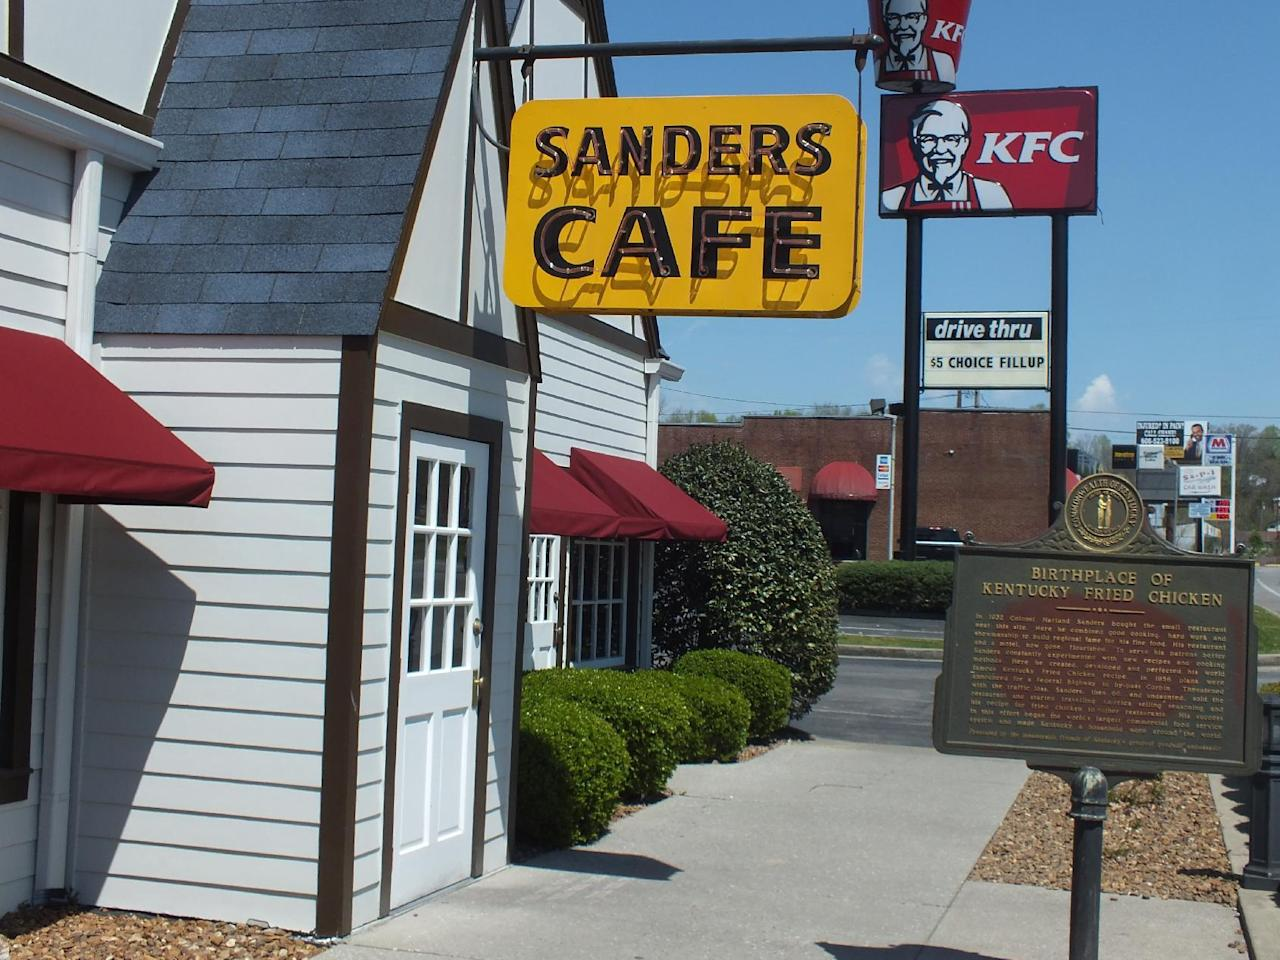 This August 2016 photo, show, the original Sanders Cafe sign, dwarfed by a newer KFC sign and bucket, that tower over the Corbin, Ky., restaurant. KFC says the recipe published in the Chicago Tribune is not authentic. But that hasn't stopped rampant online speculation that one of the most legendary and closely guarded secrets in the history of fast food has been exposed. (Jay Jones/Chicago Tribune via AP)